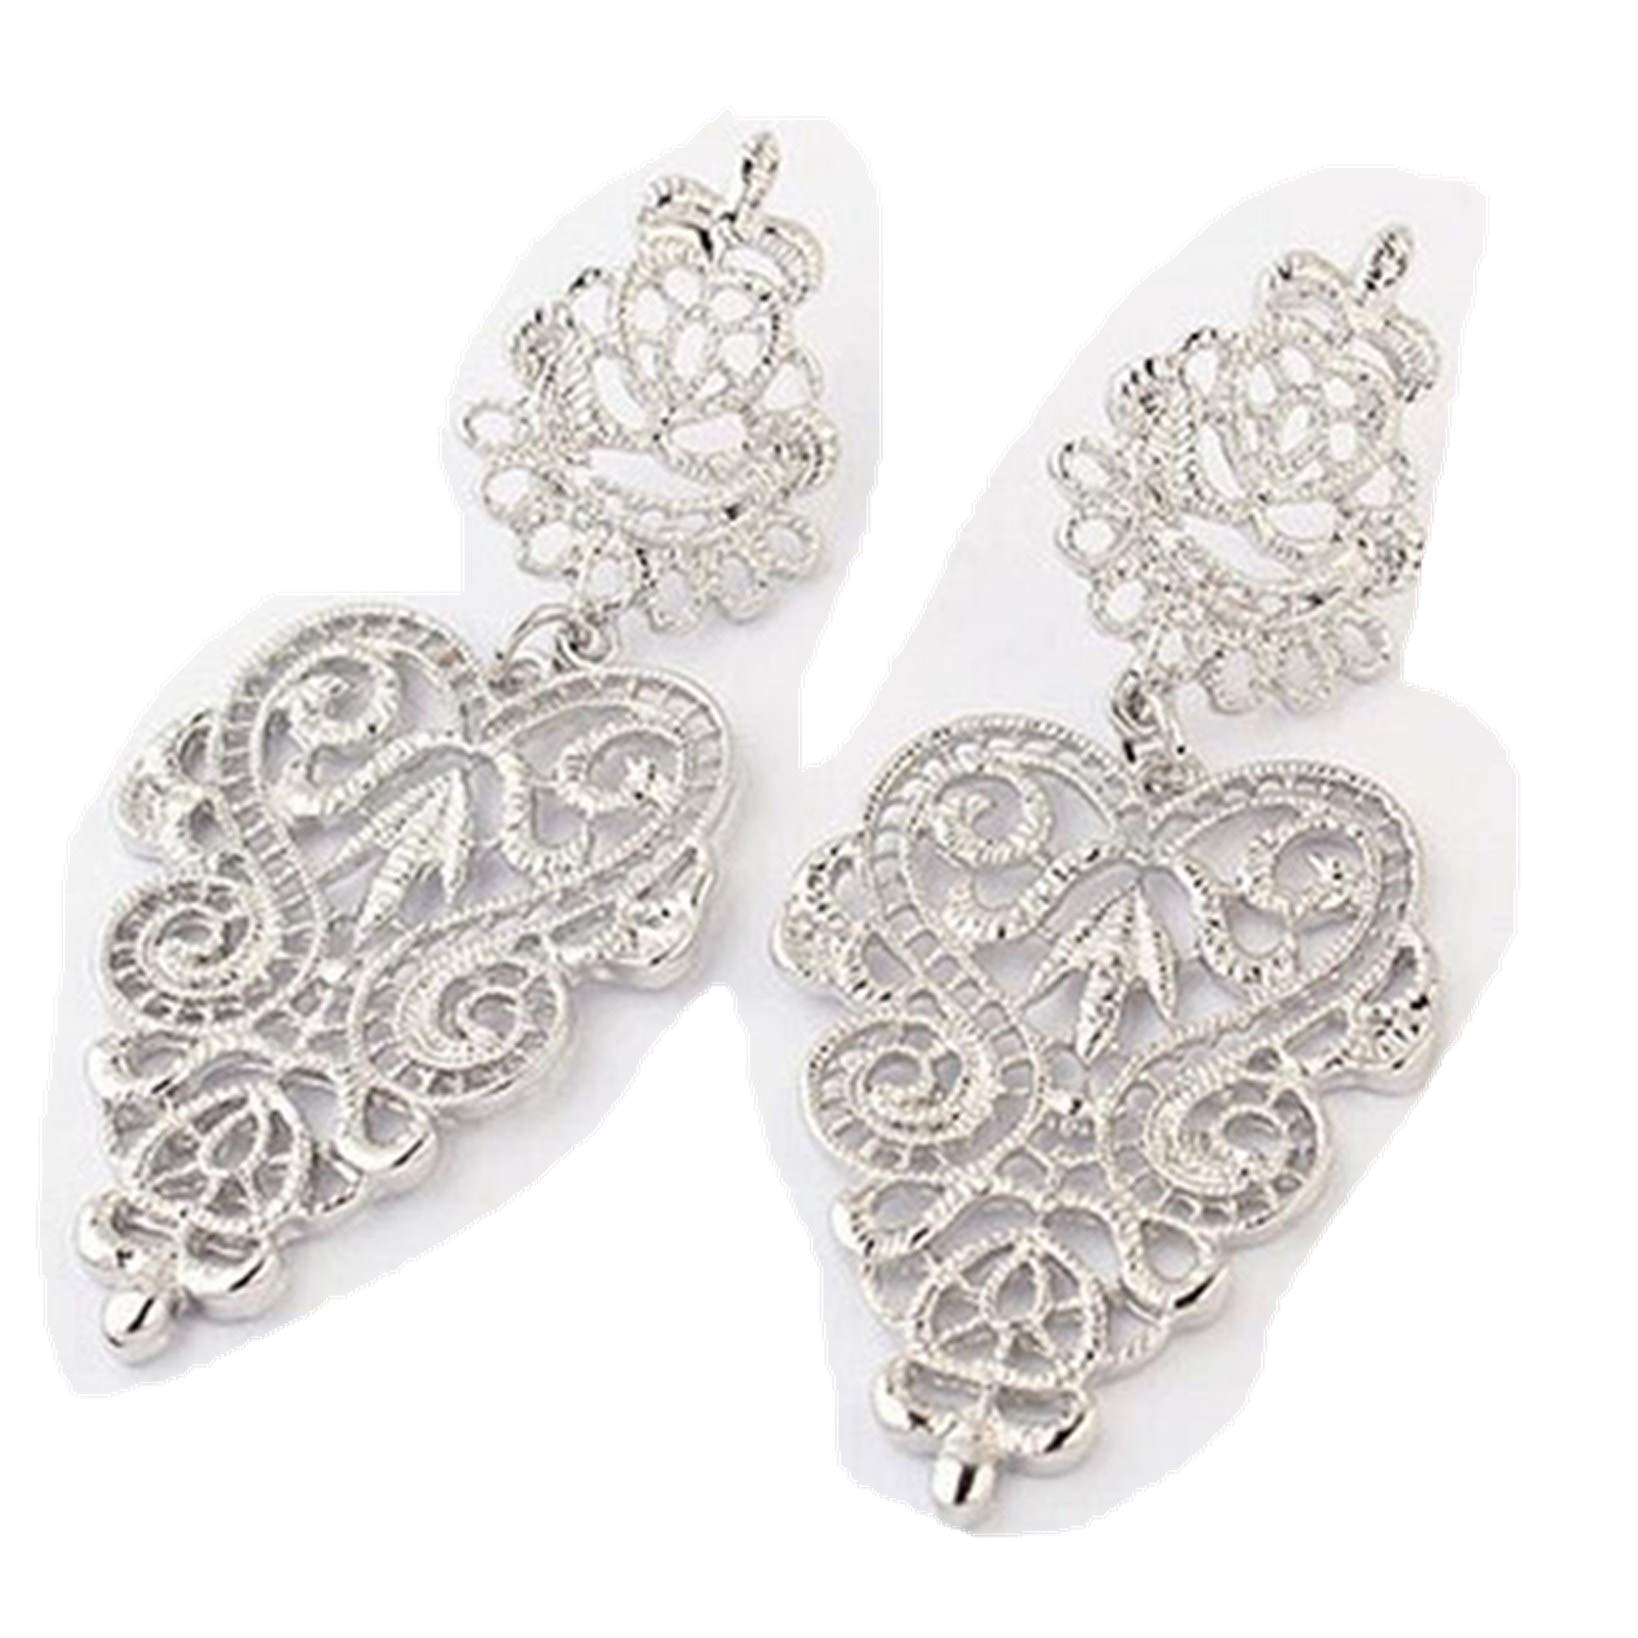 BSGSH Boho Chic Hollow Flower Shape with Drop Stud Earrings Fashion Jewelry for Women Girls (Silver)